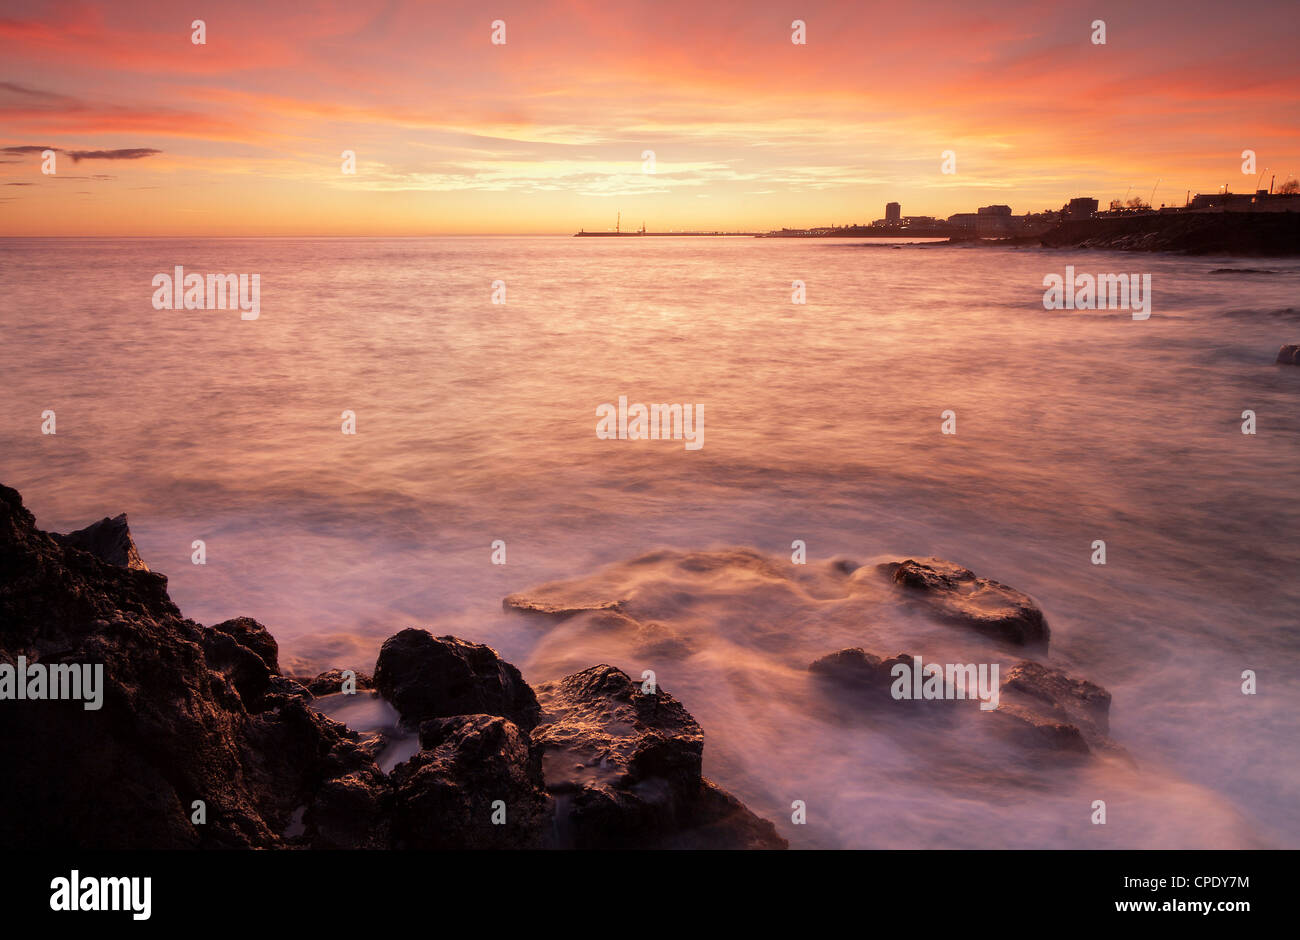 Landscape / waterscape during sunset on Ponta Delgada city in the Azores. - Stock Image